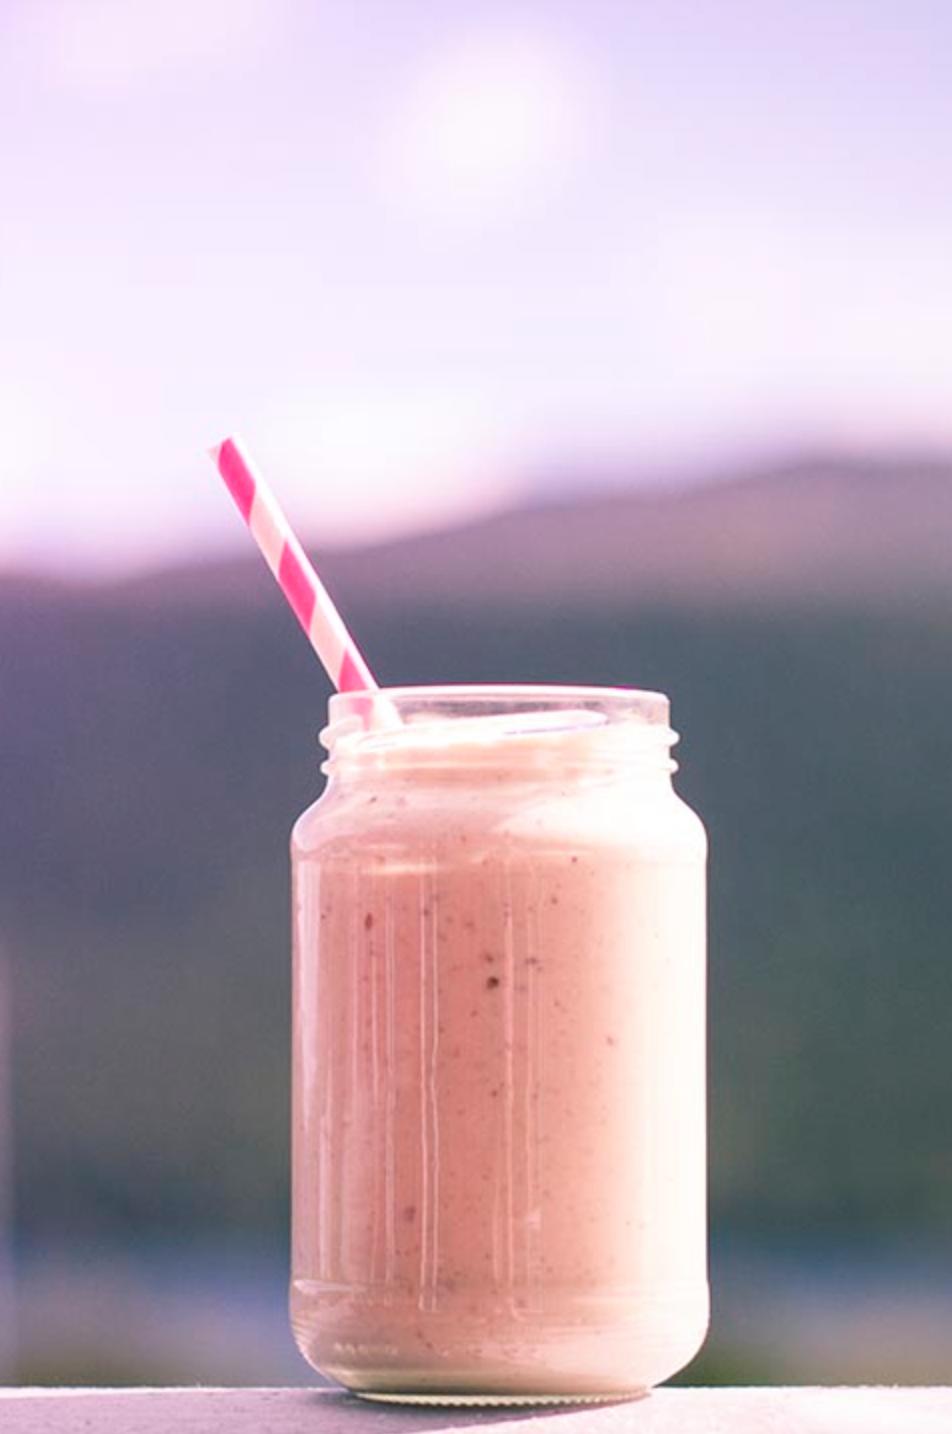 Snickers smoothie!